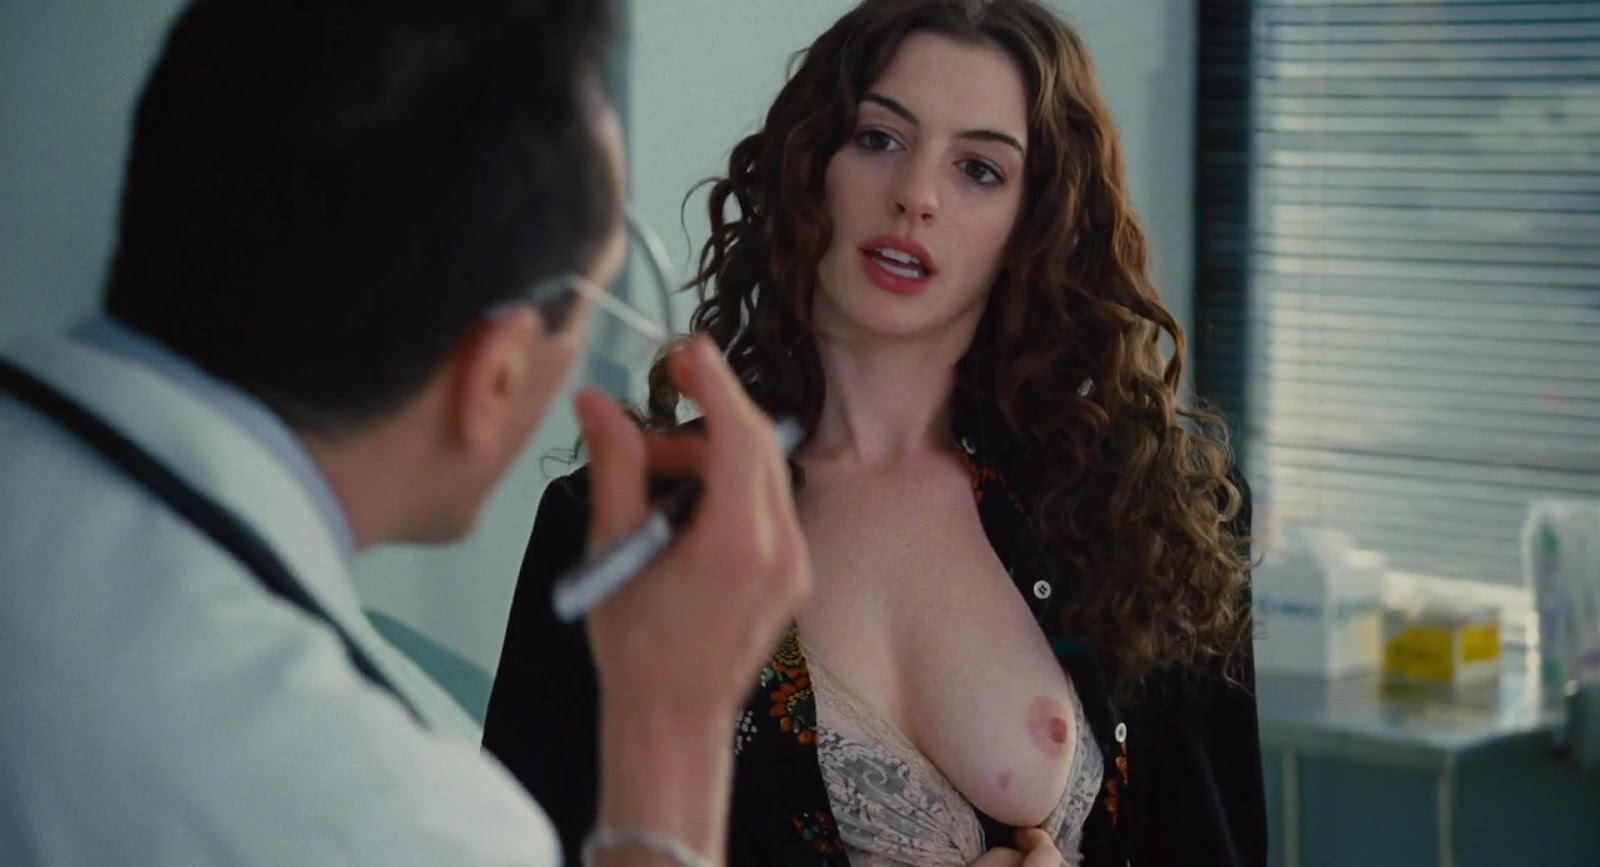 http://1.bp.blogspot.com/-jfRnYcc4QLk/T_FRJMeO3CI/AAAAAAAABJ4/HJ64aWq3AS0/s1600/Anne+Hathaway+-+Love+and+Other+Drugs+0048.jpg